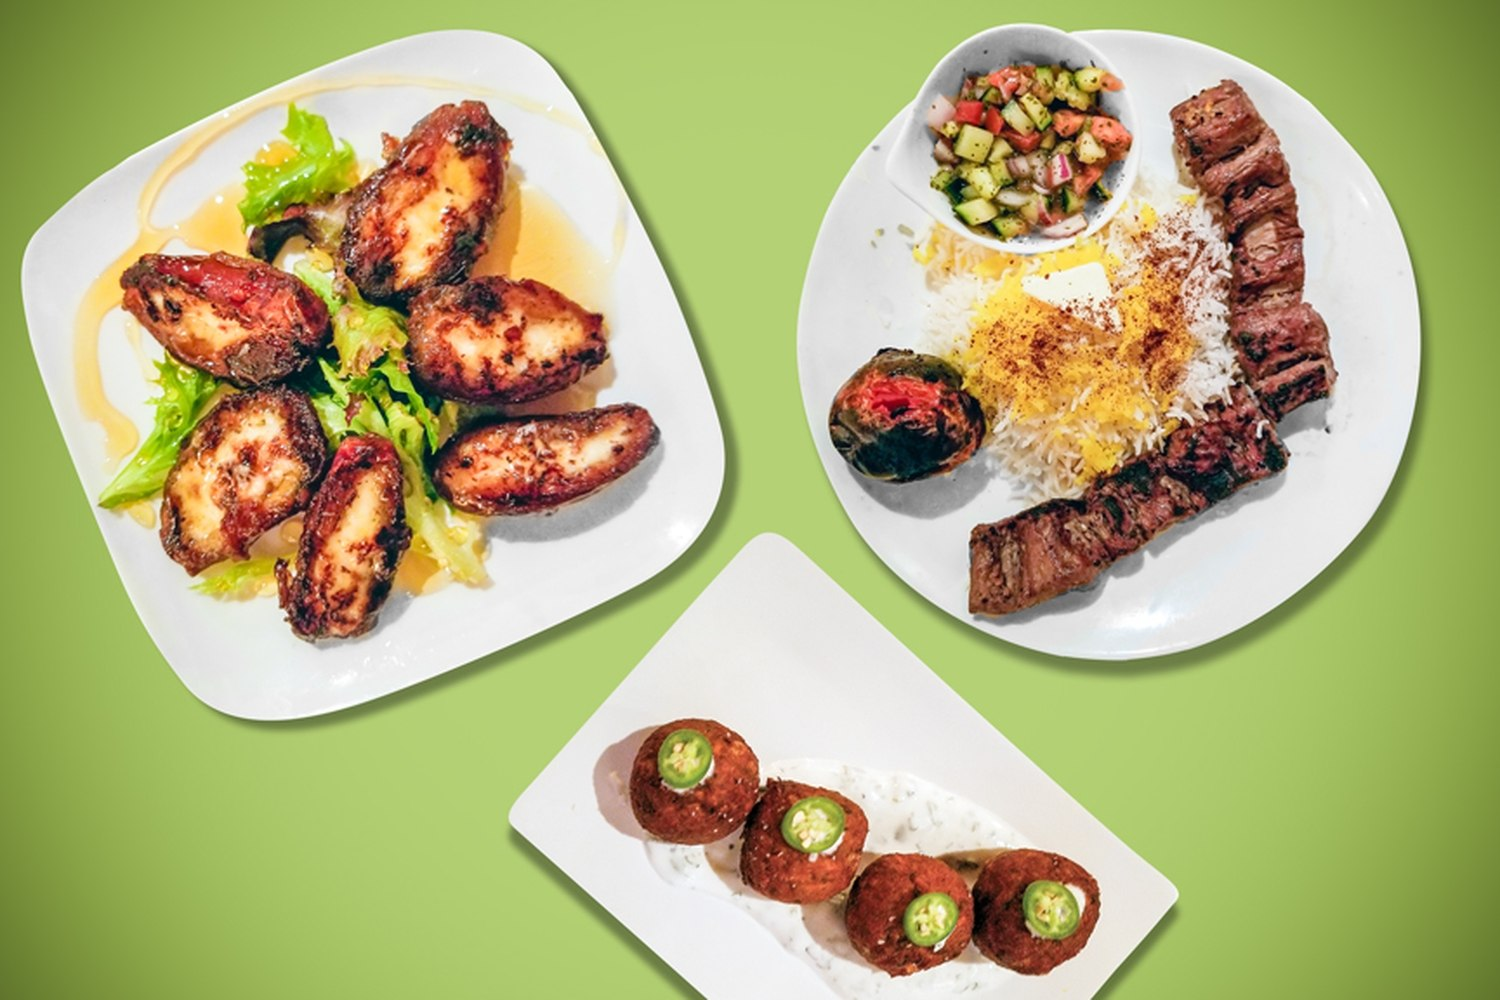 Milad Persian Bistro Kabob all day every day, except Monday  - By Michael J Wilson SANTA FE REPORTER July 18, 2017